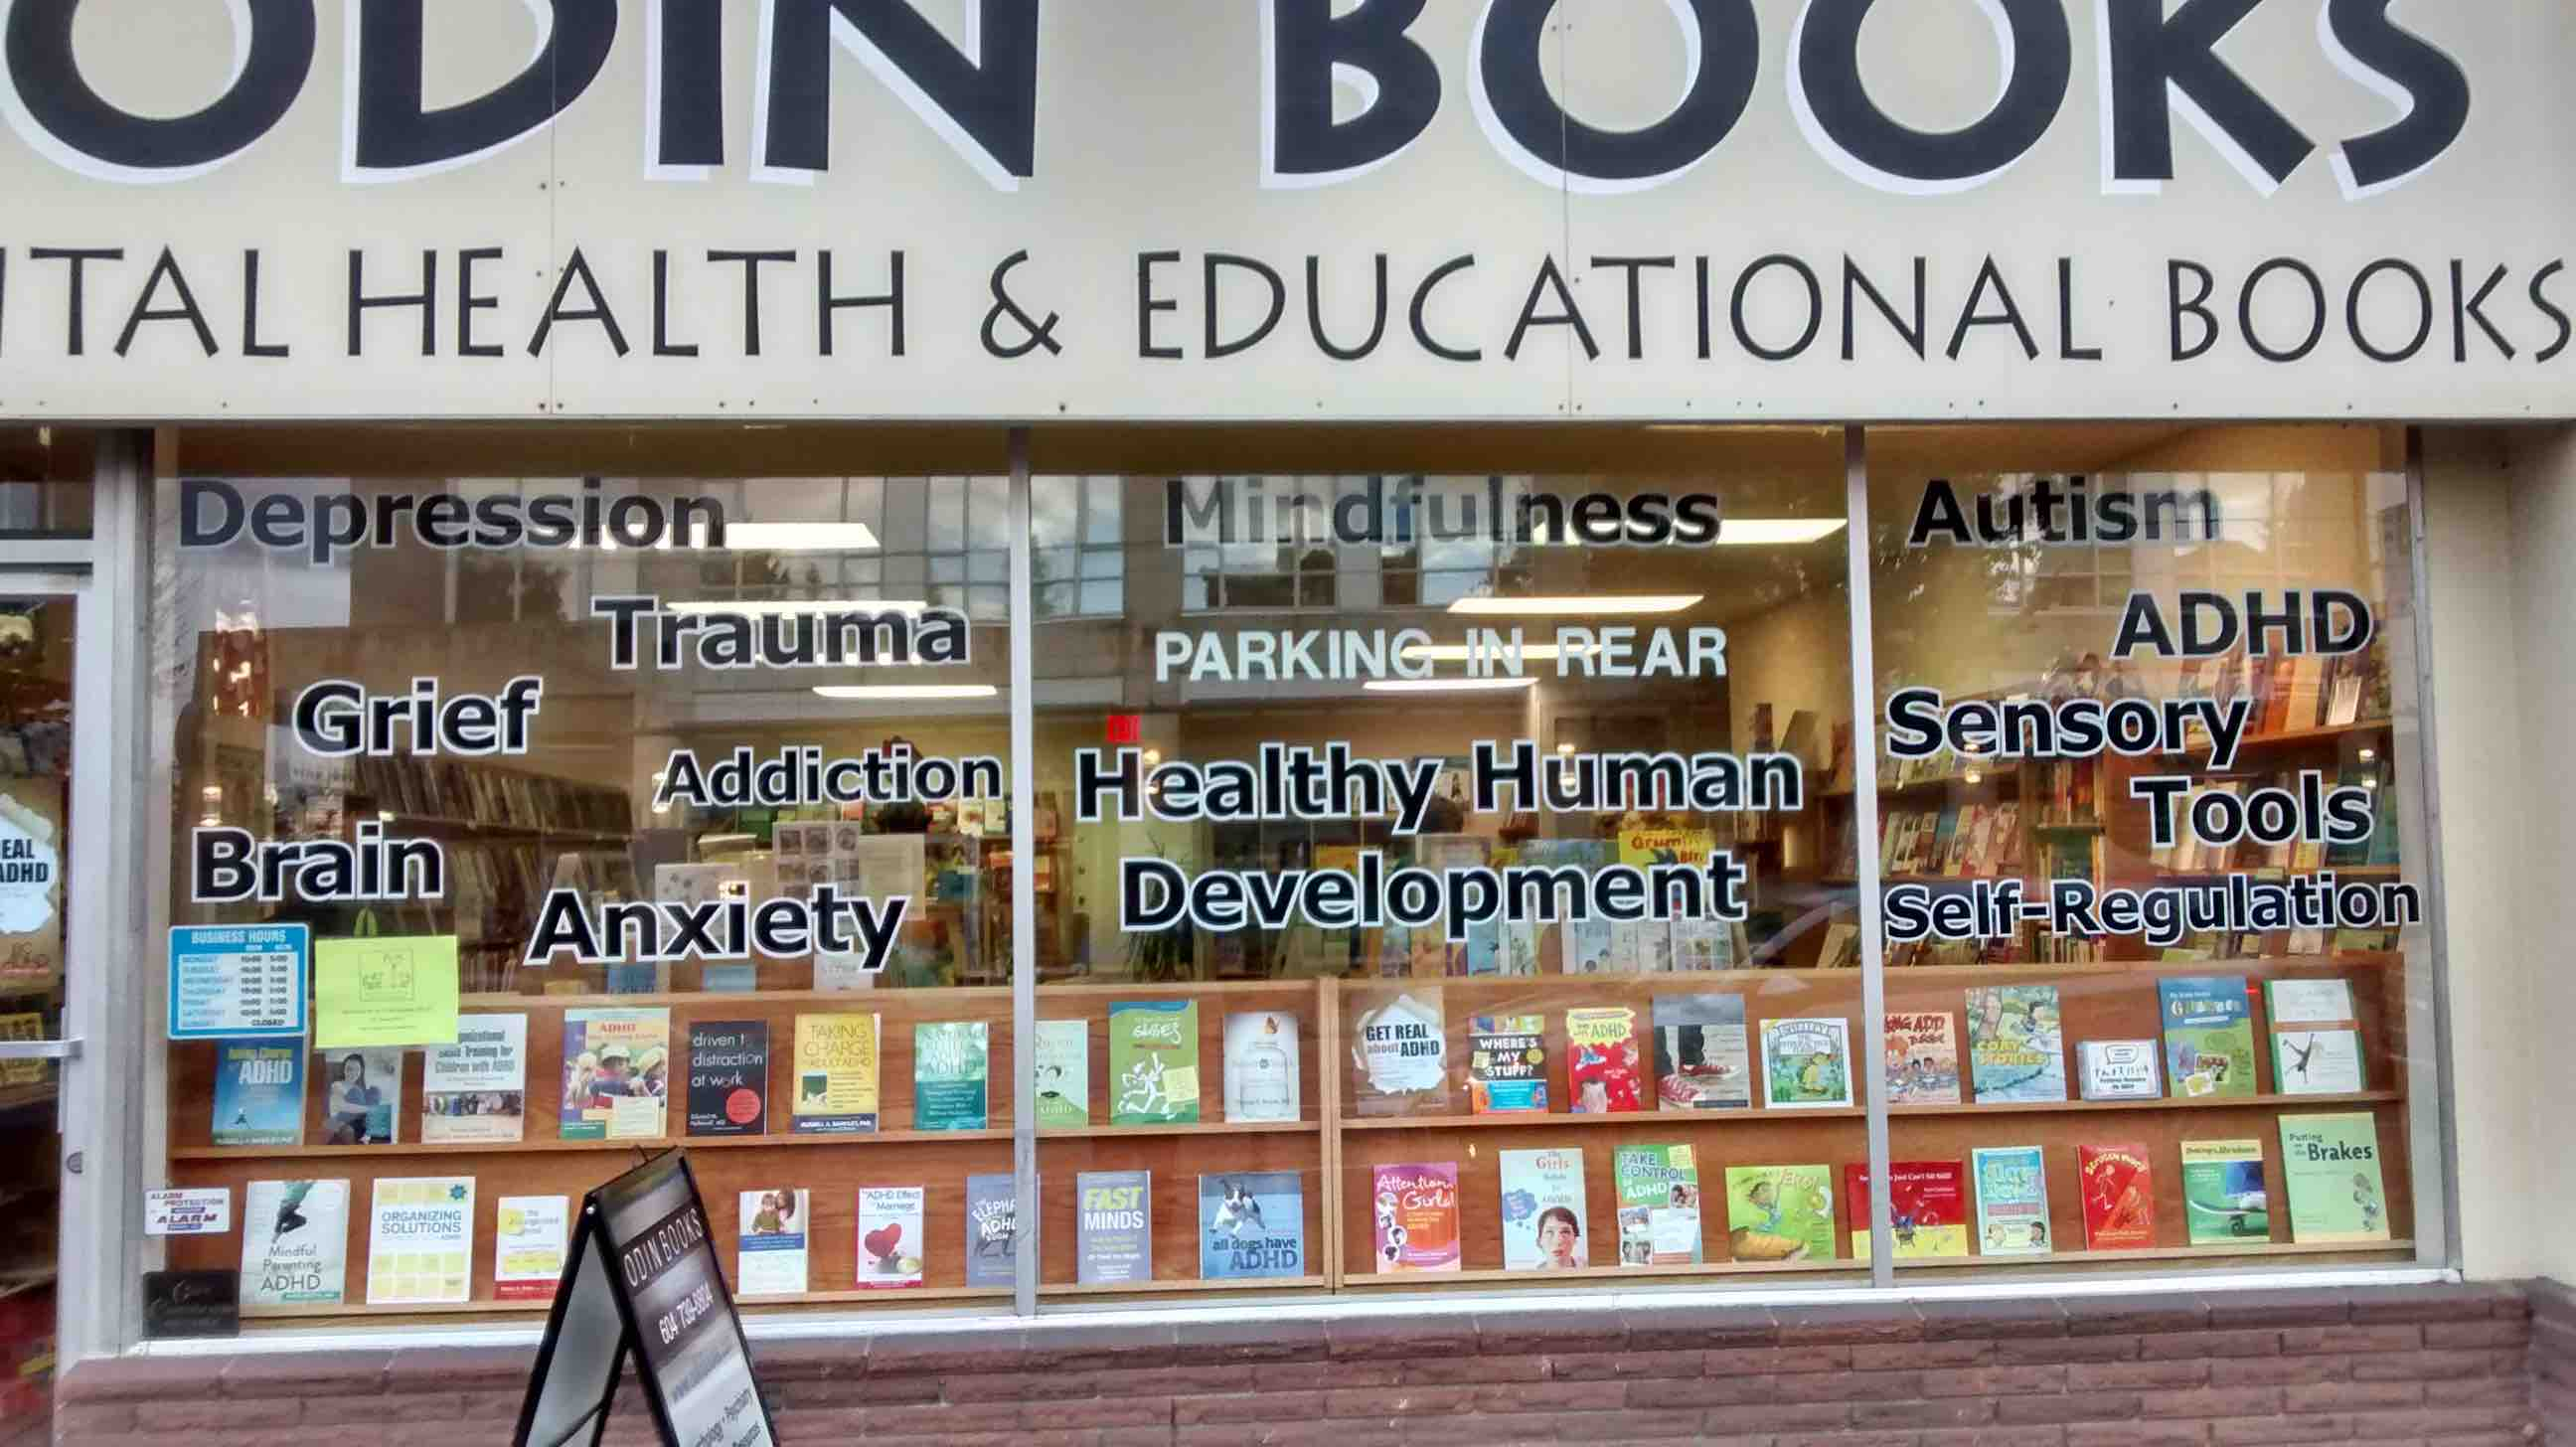 Odin books BC ADHD Awareness week book display photo 2015 #3